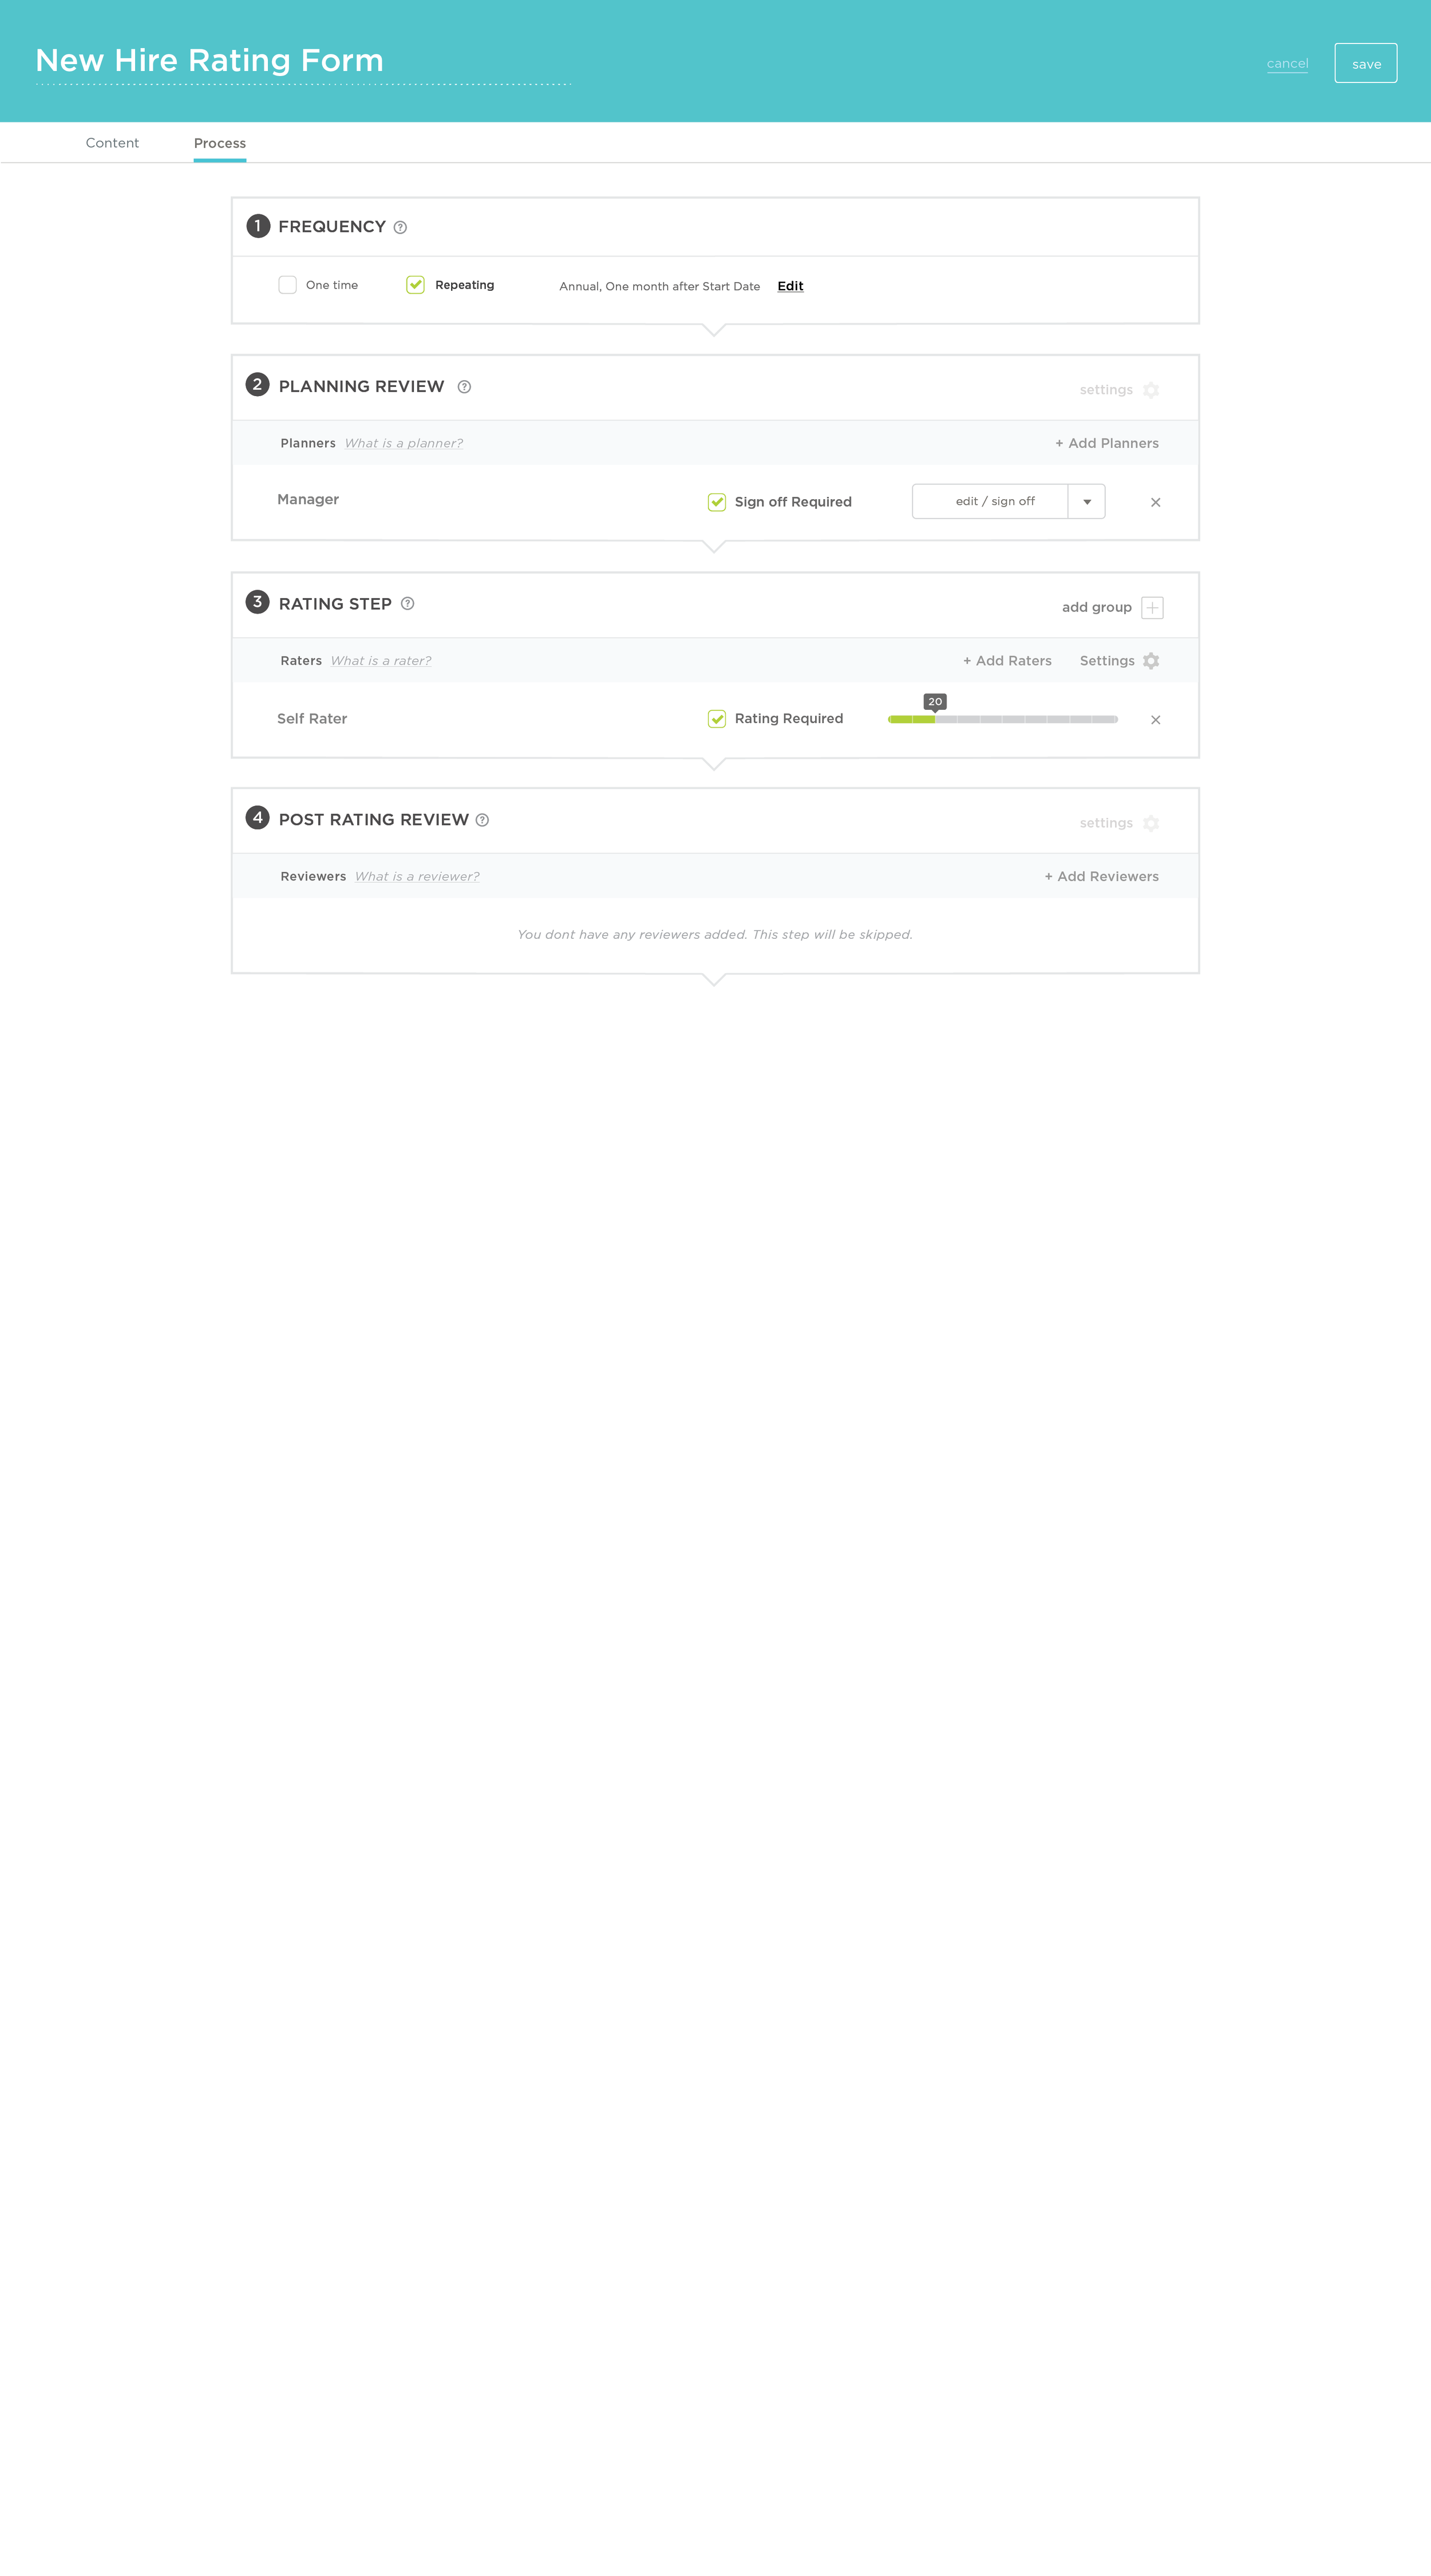 Invision_Pe_rating-form-process_03_11.png